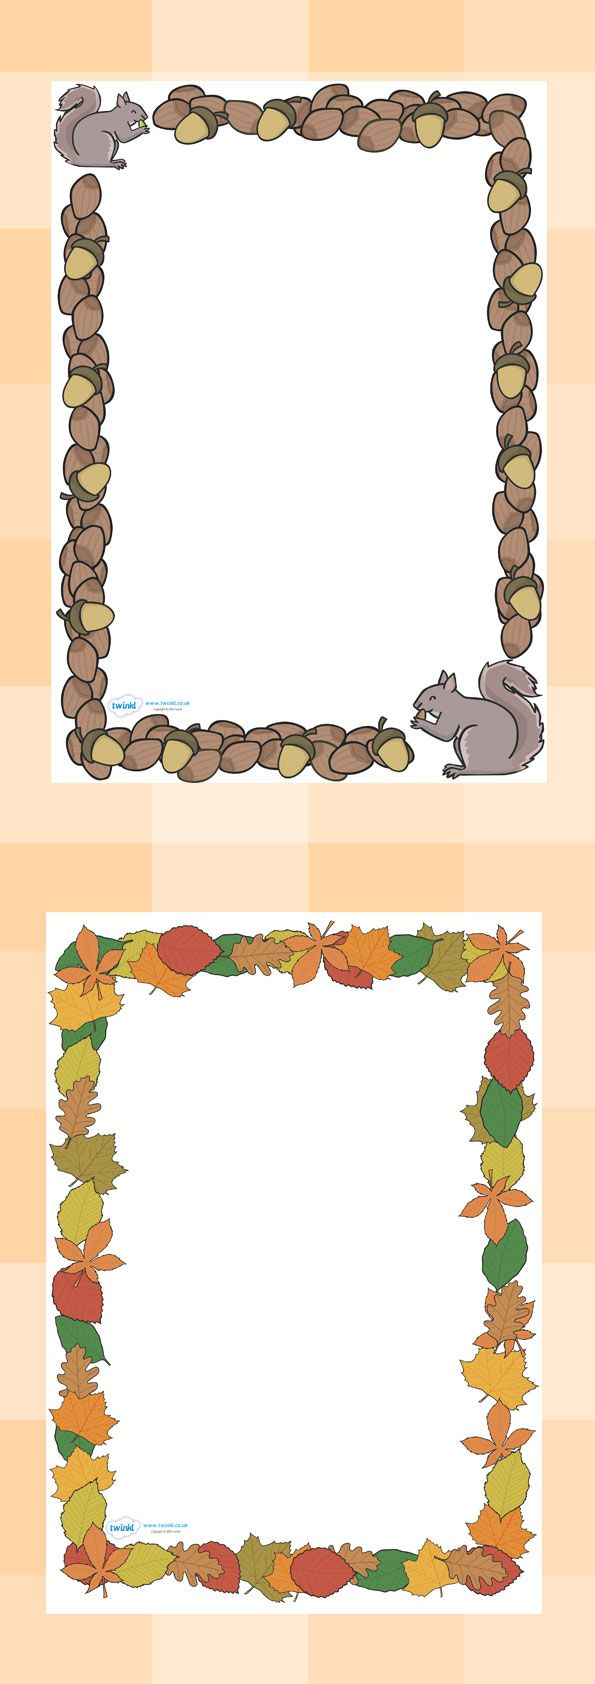 Twinkl Resources >> Fall Page Borders >> Classroom printables for Pre-School, Kindergarten, Elementary School and beyond! Topics, Seasons, Fall, Printable Writing Paper, Borders